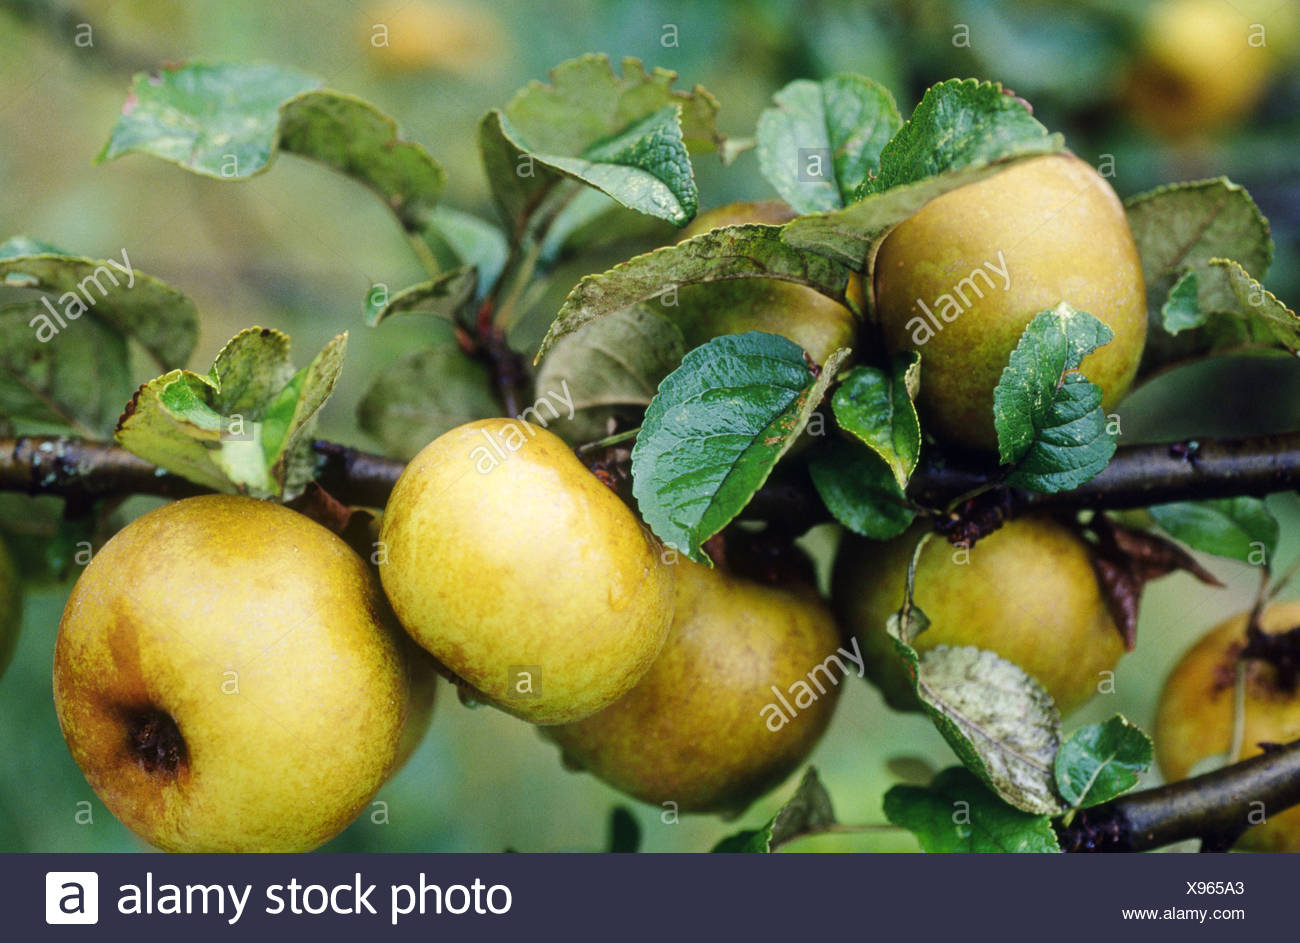 ´Reineta´ apples - Stock Image